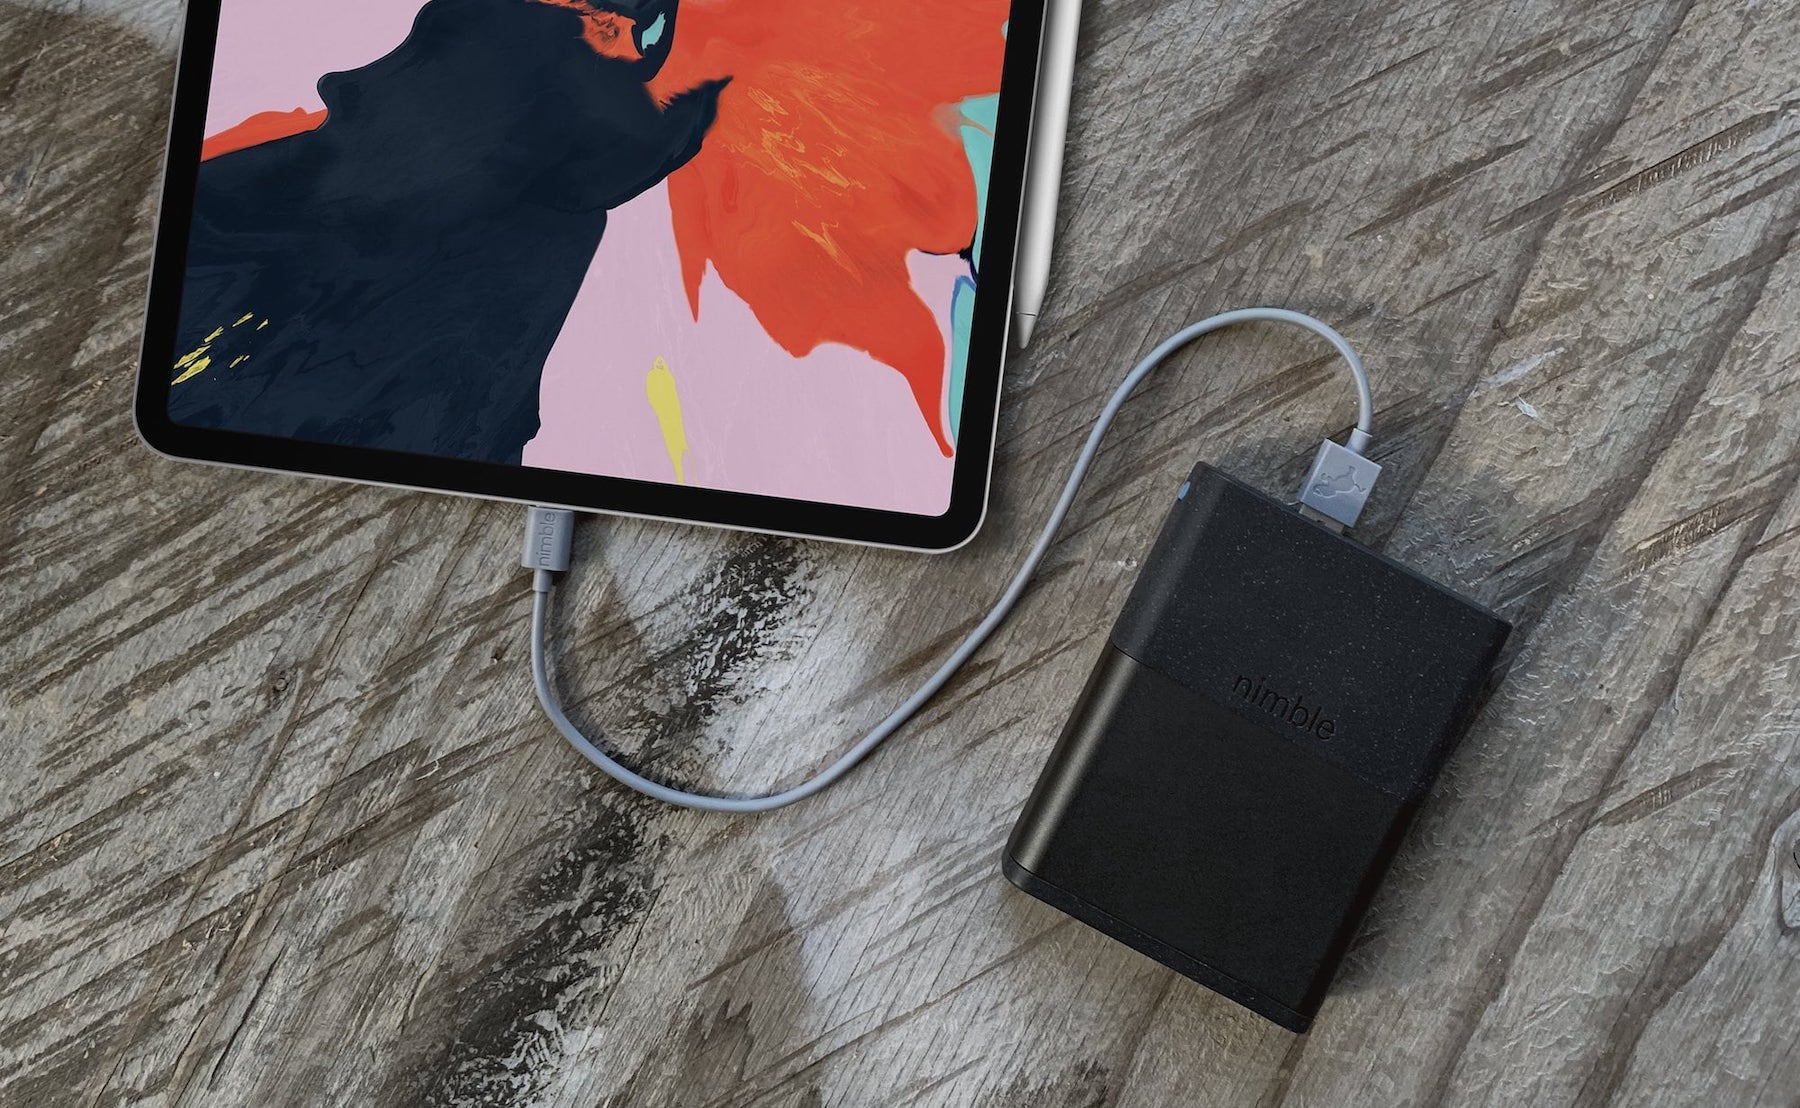 The 5-day power bank is plugged into an iPad.